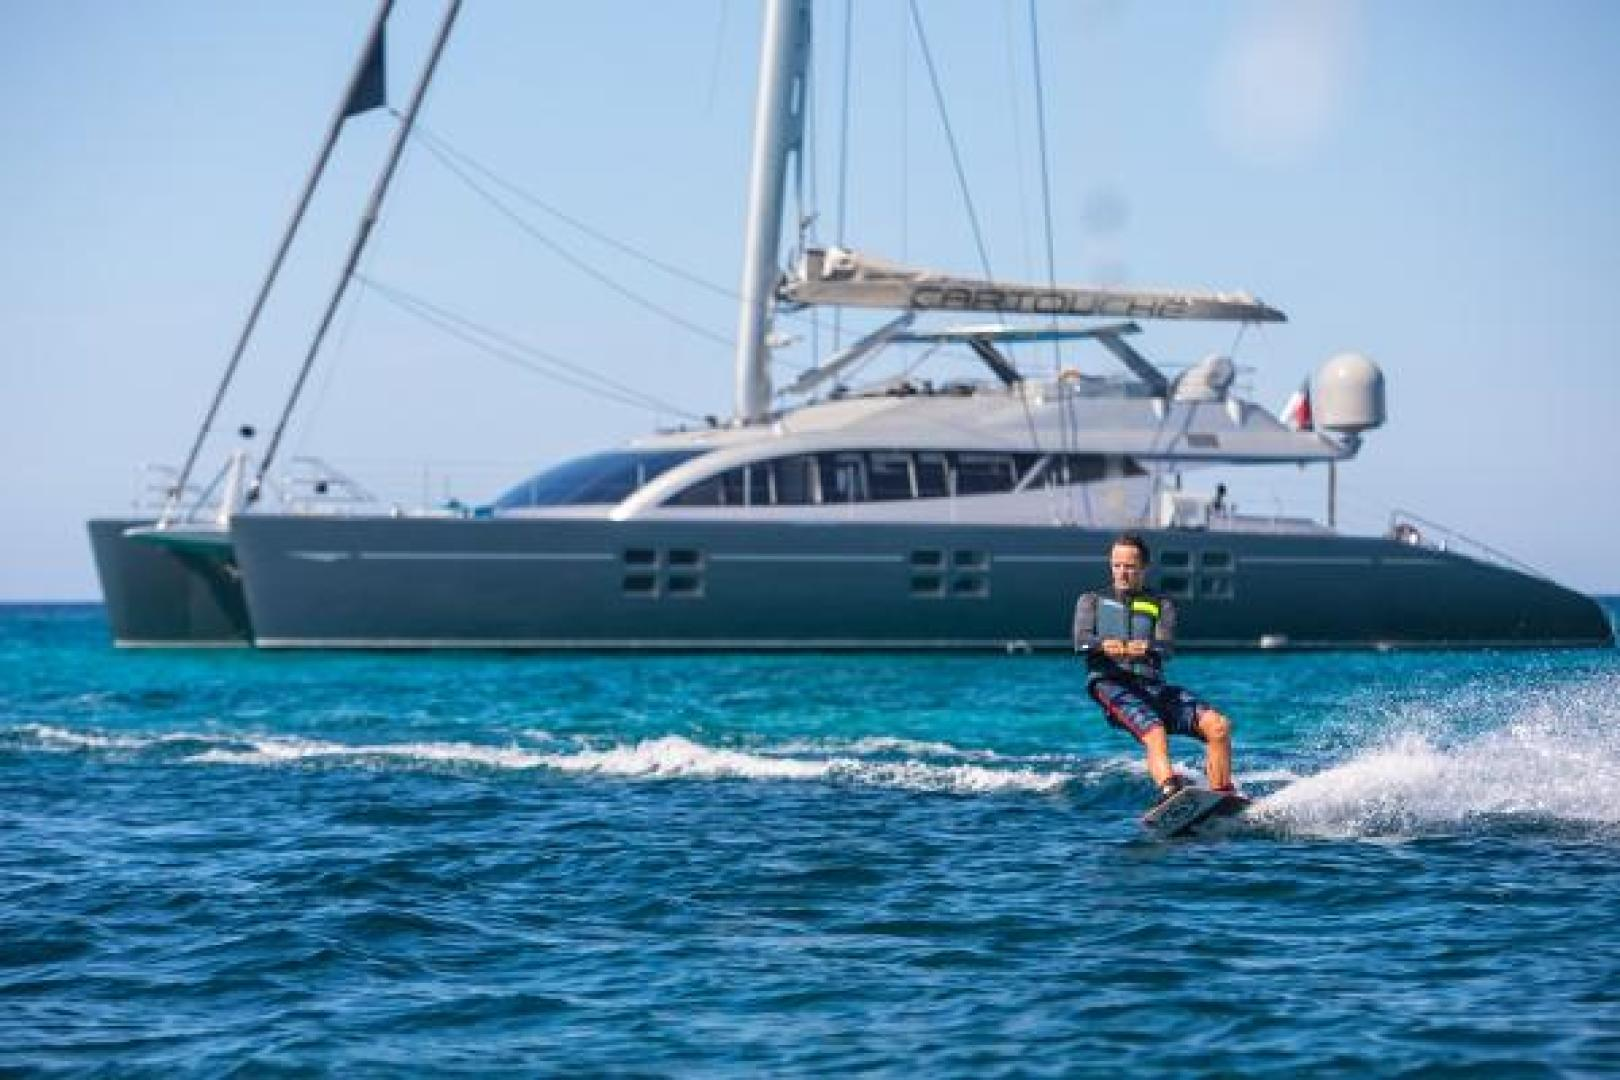 Catamaran-Blue Coast Yachts  2011-CARTOUCHE Antigua & Barbuda-1292196 | Thumbnail